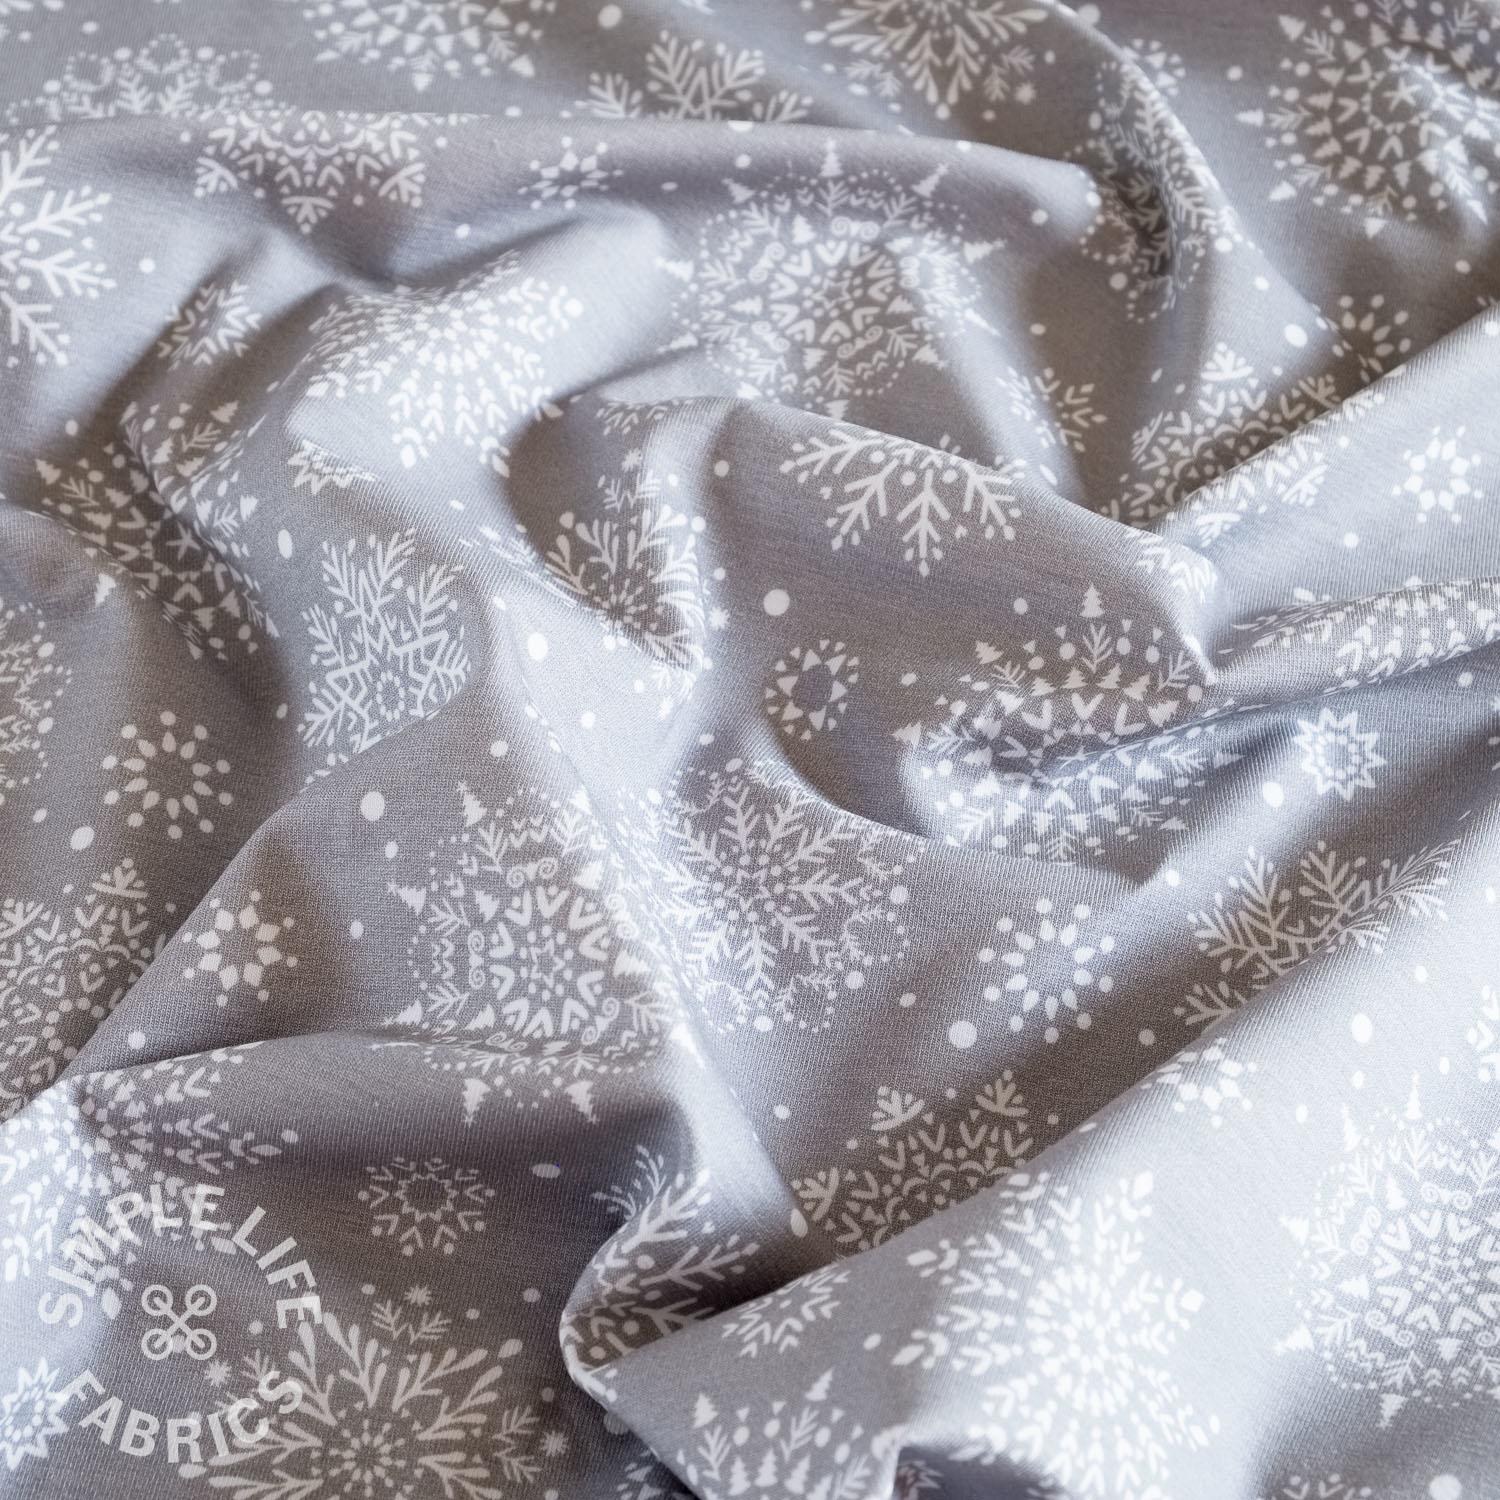 Snowflakes on grey Christmas jersey fabric